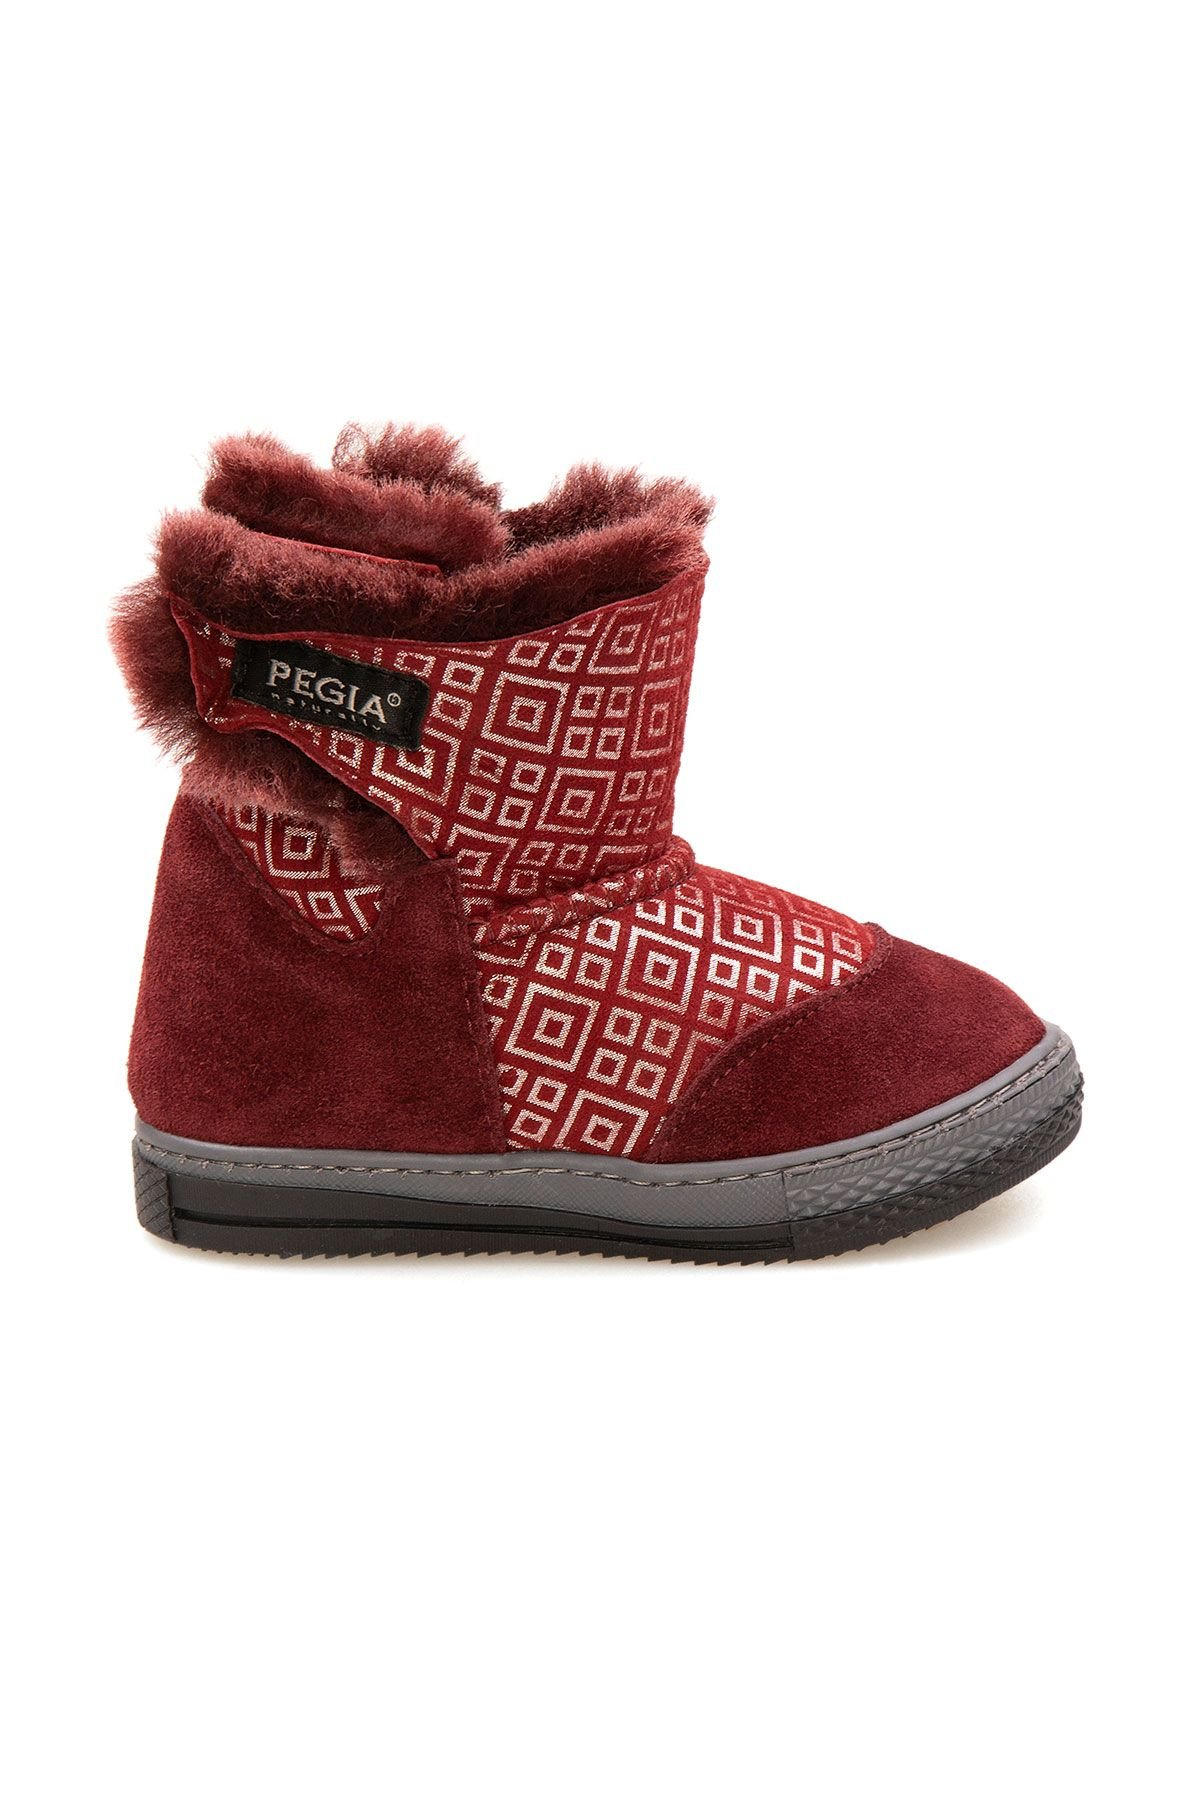 Pegia Children's Shearling Boots 186031 Claret red